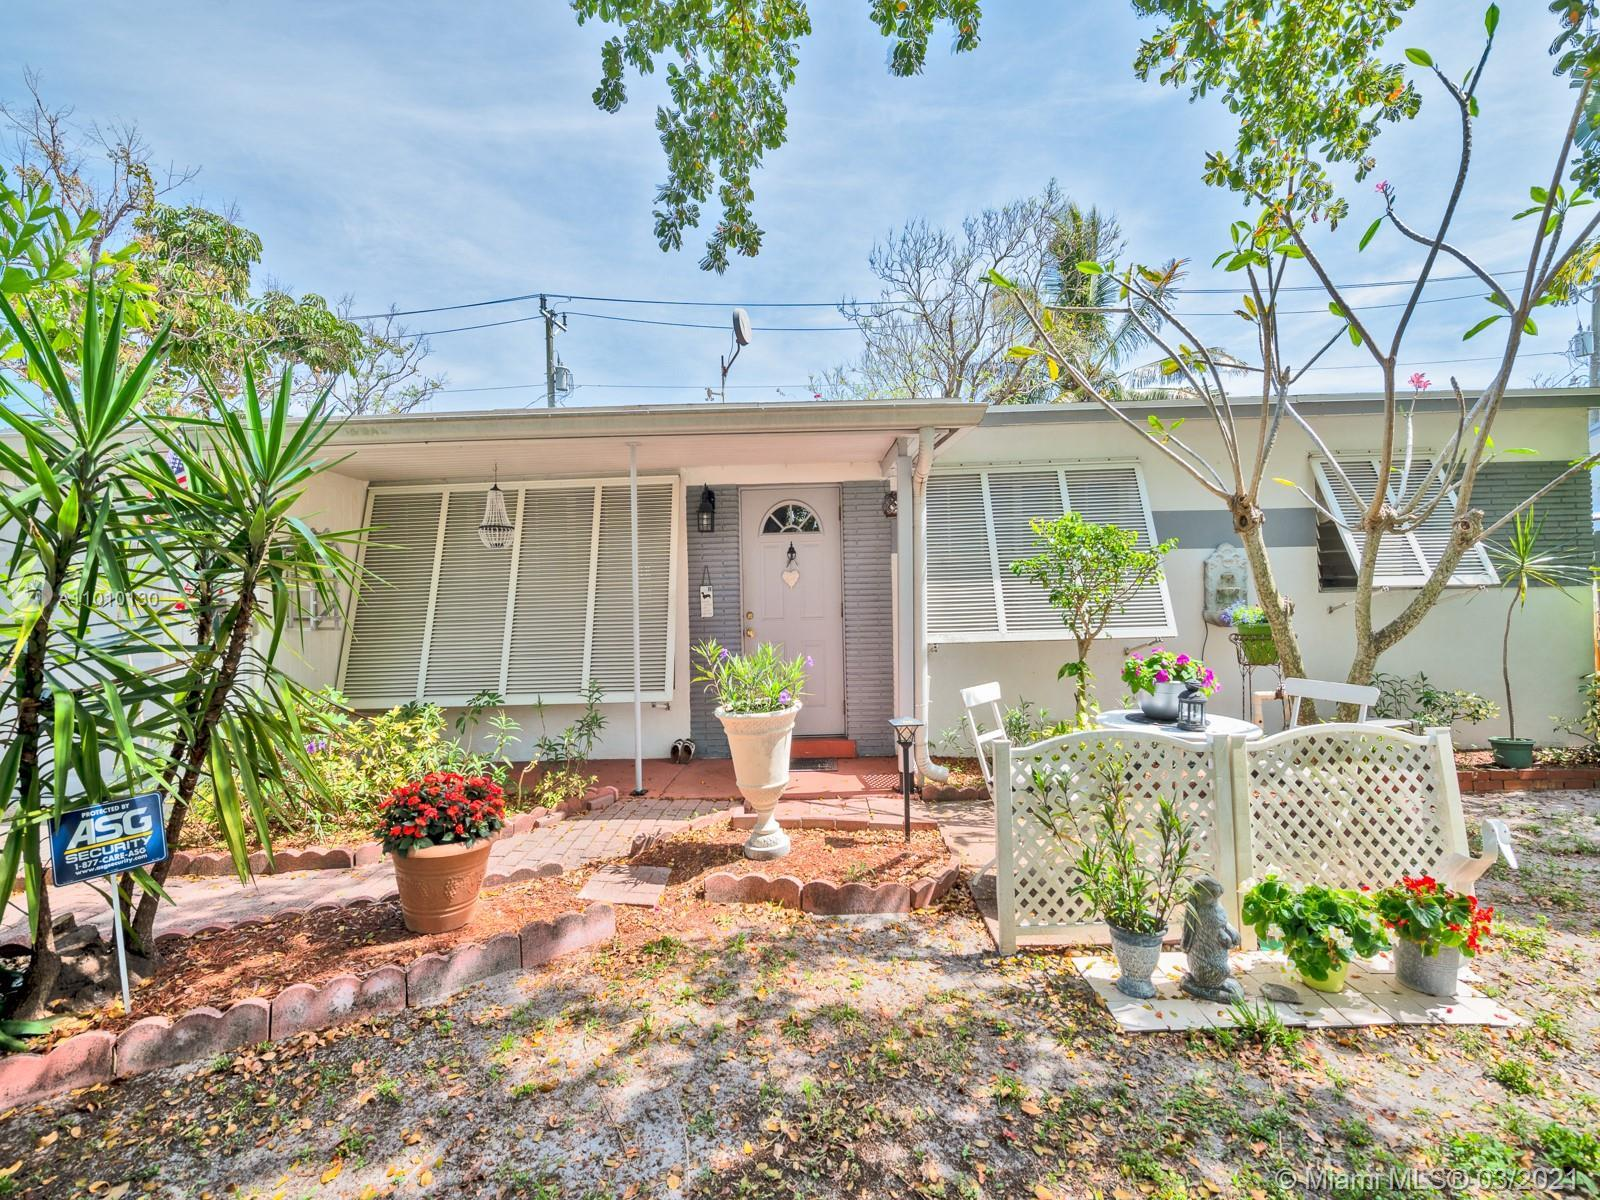 Absolutely Adorable! Three bedroom, one bathroom, one car garage home in Collier Manor. This Property shows pride of ownership! Situated in a very high and dry lot. Natural gas, lots of natural light and a wonderful entertainer's backyard. This property will not last.